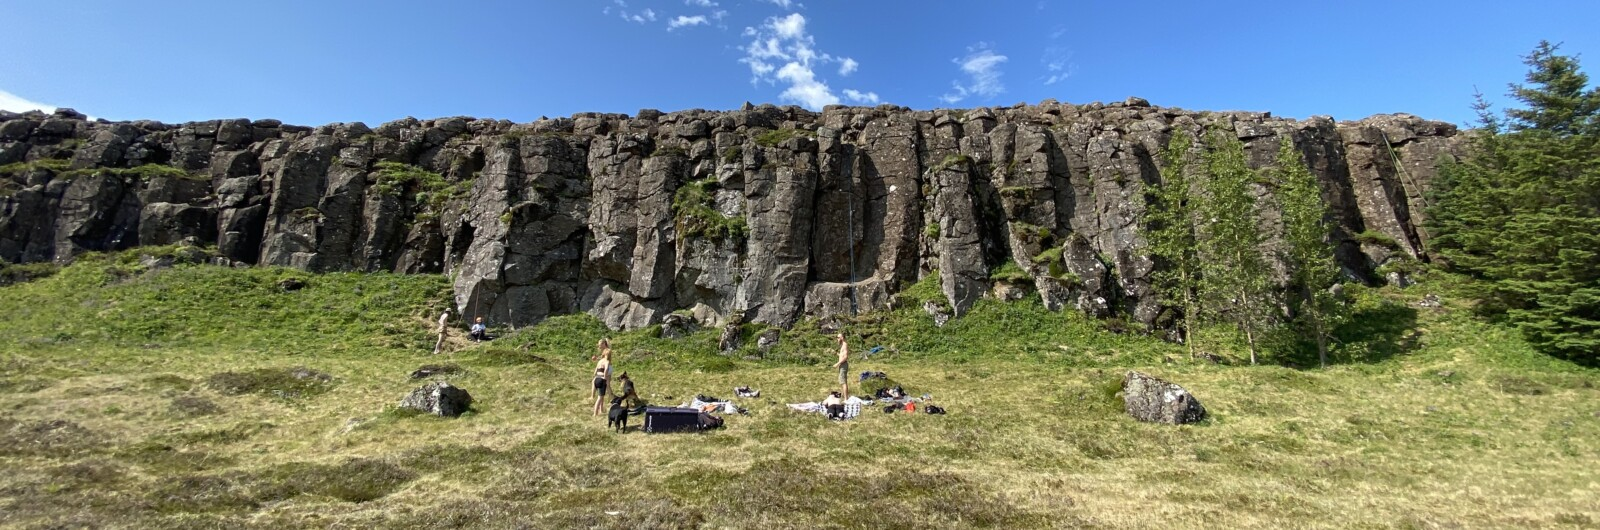 sport climbing, cliffs and sun bathing